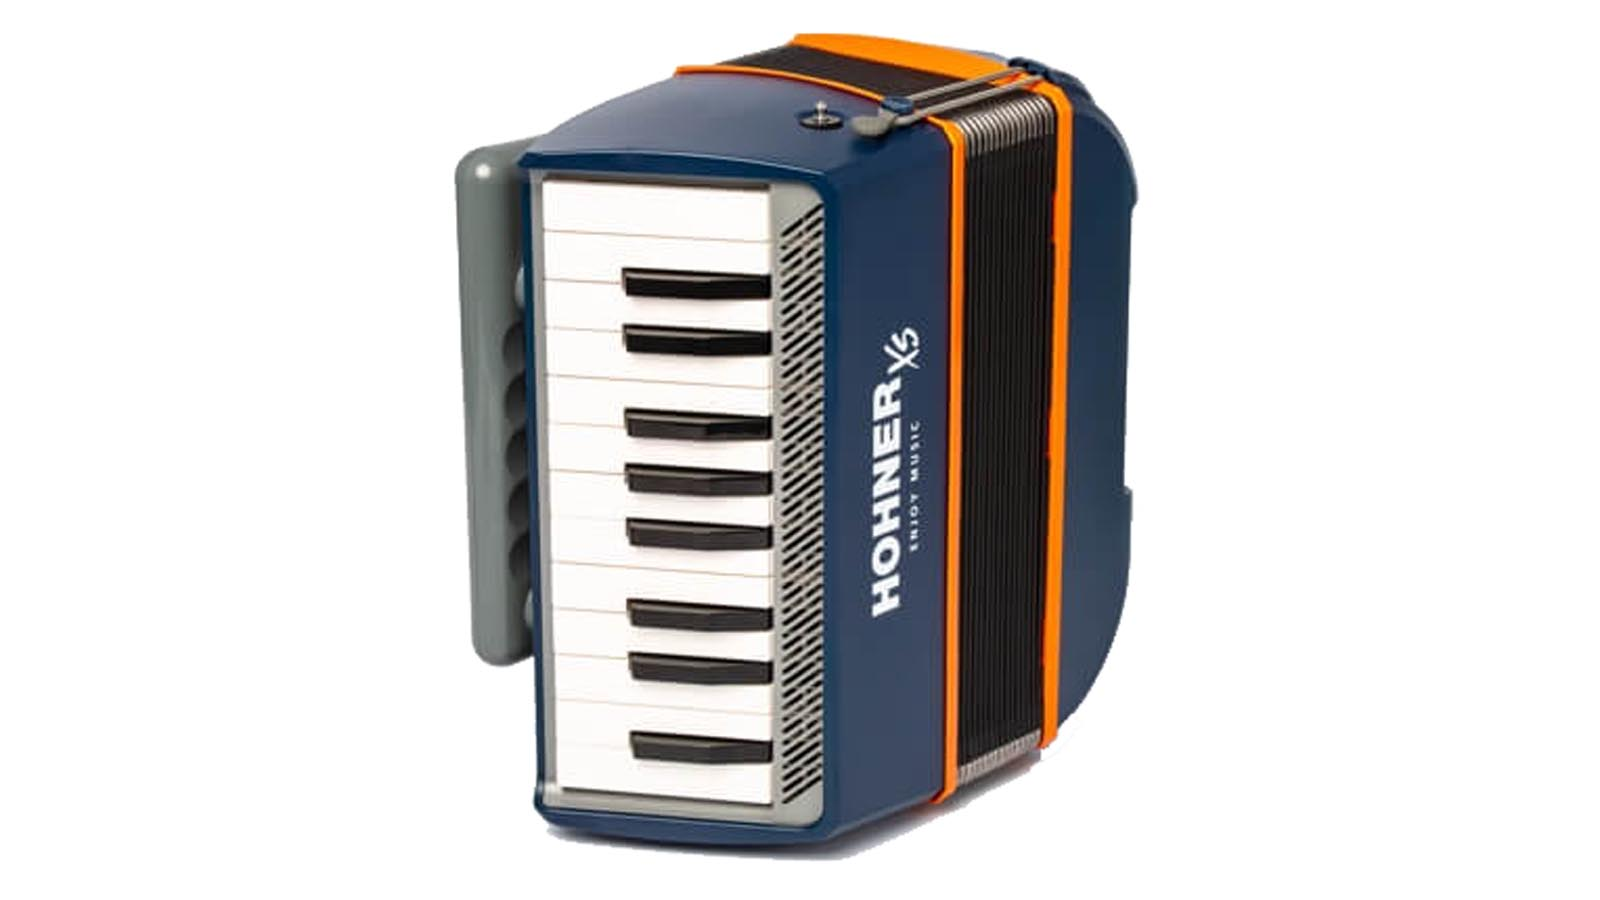 Hohner XS Kinder Akkordeon blau / orange